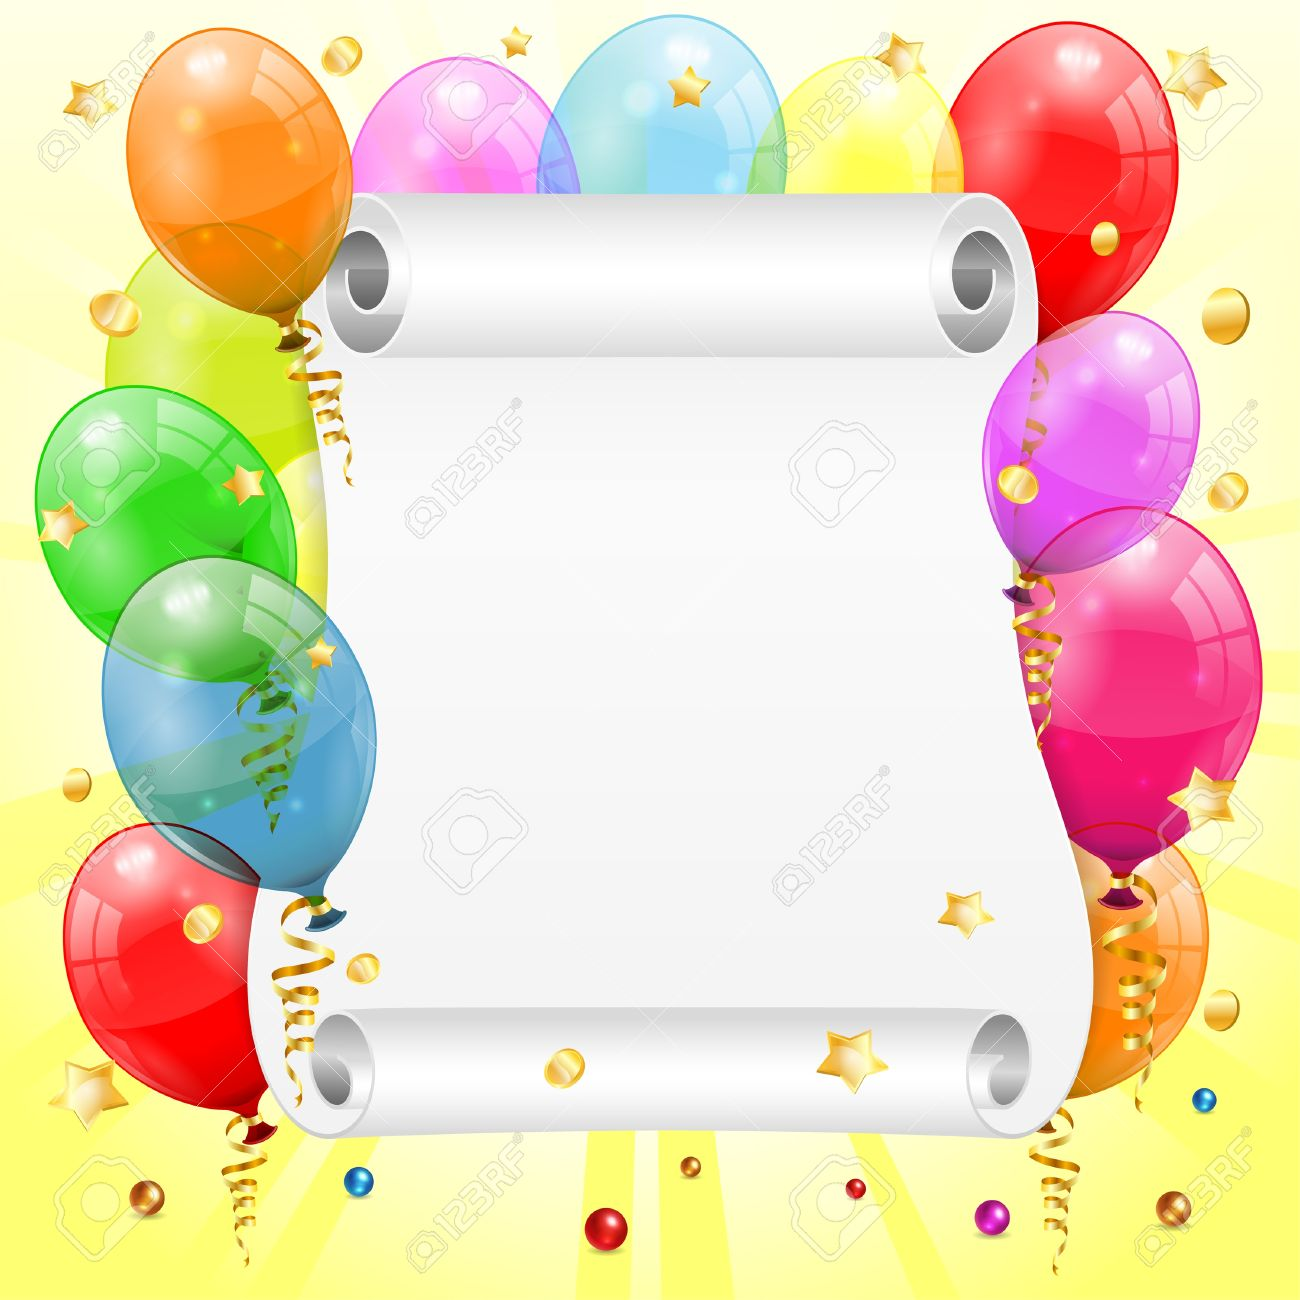 birthday frame clipart ; 18421738-birthday-frame-with-3d-transparent-birthday-balloons-scroll-paper-confetti-and-streamer--Stock-Photo